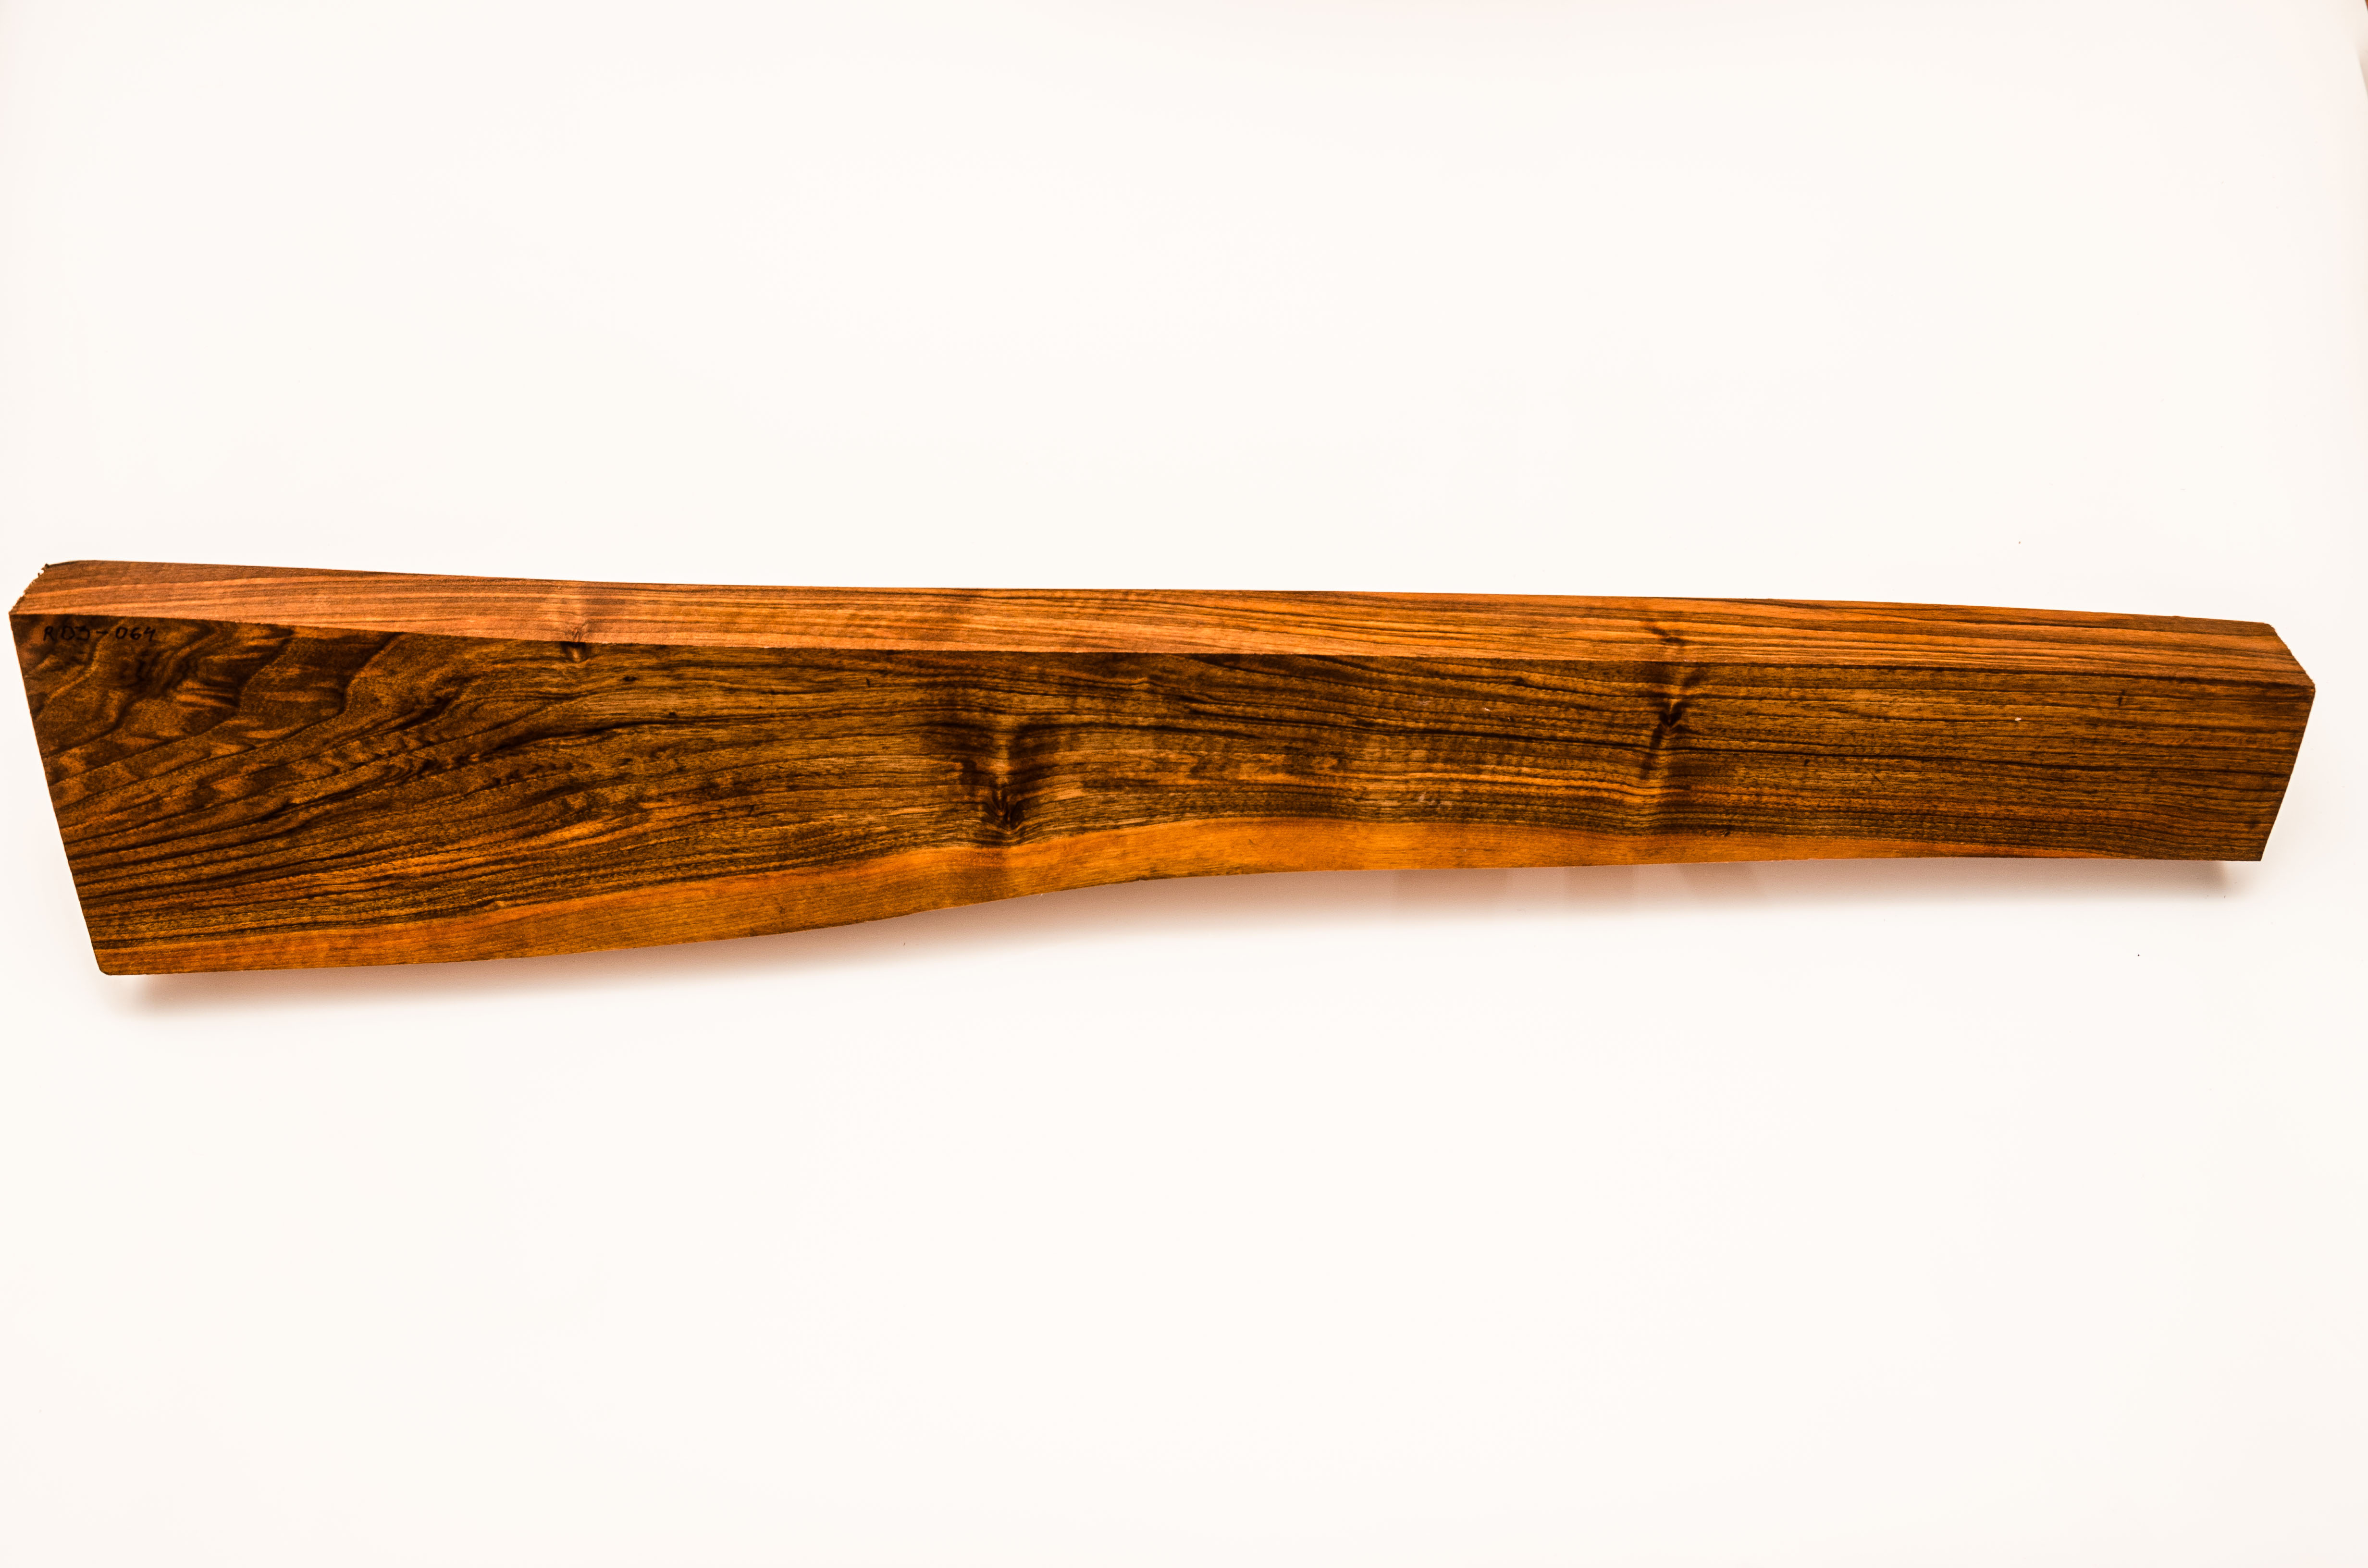 walnut_stock_blanks_for_guns_and_rifles-1607